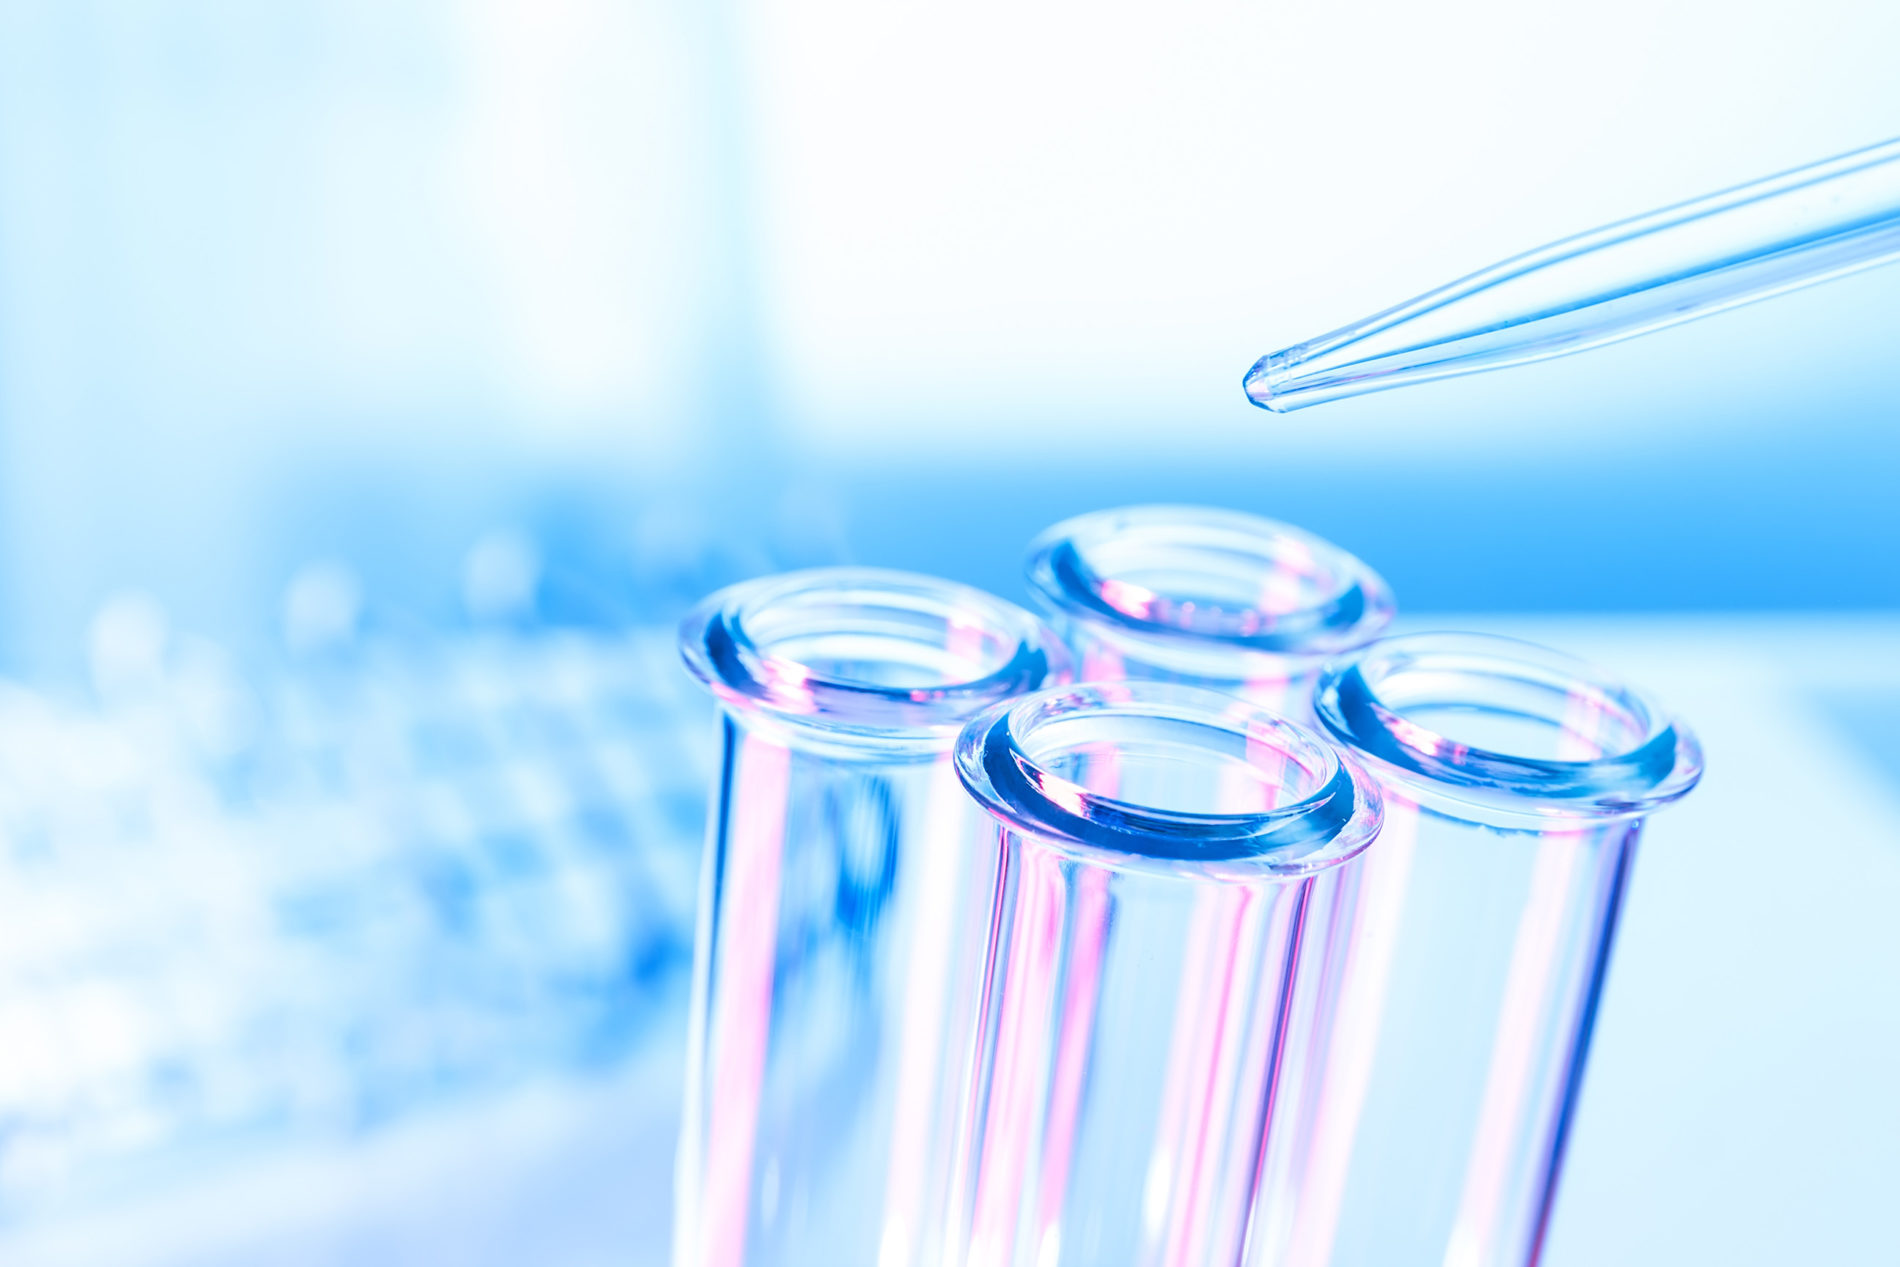 EPA Publishes Method 1633 to Test for 40 PFAS Compounds in Eight Media Types